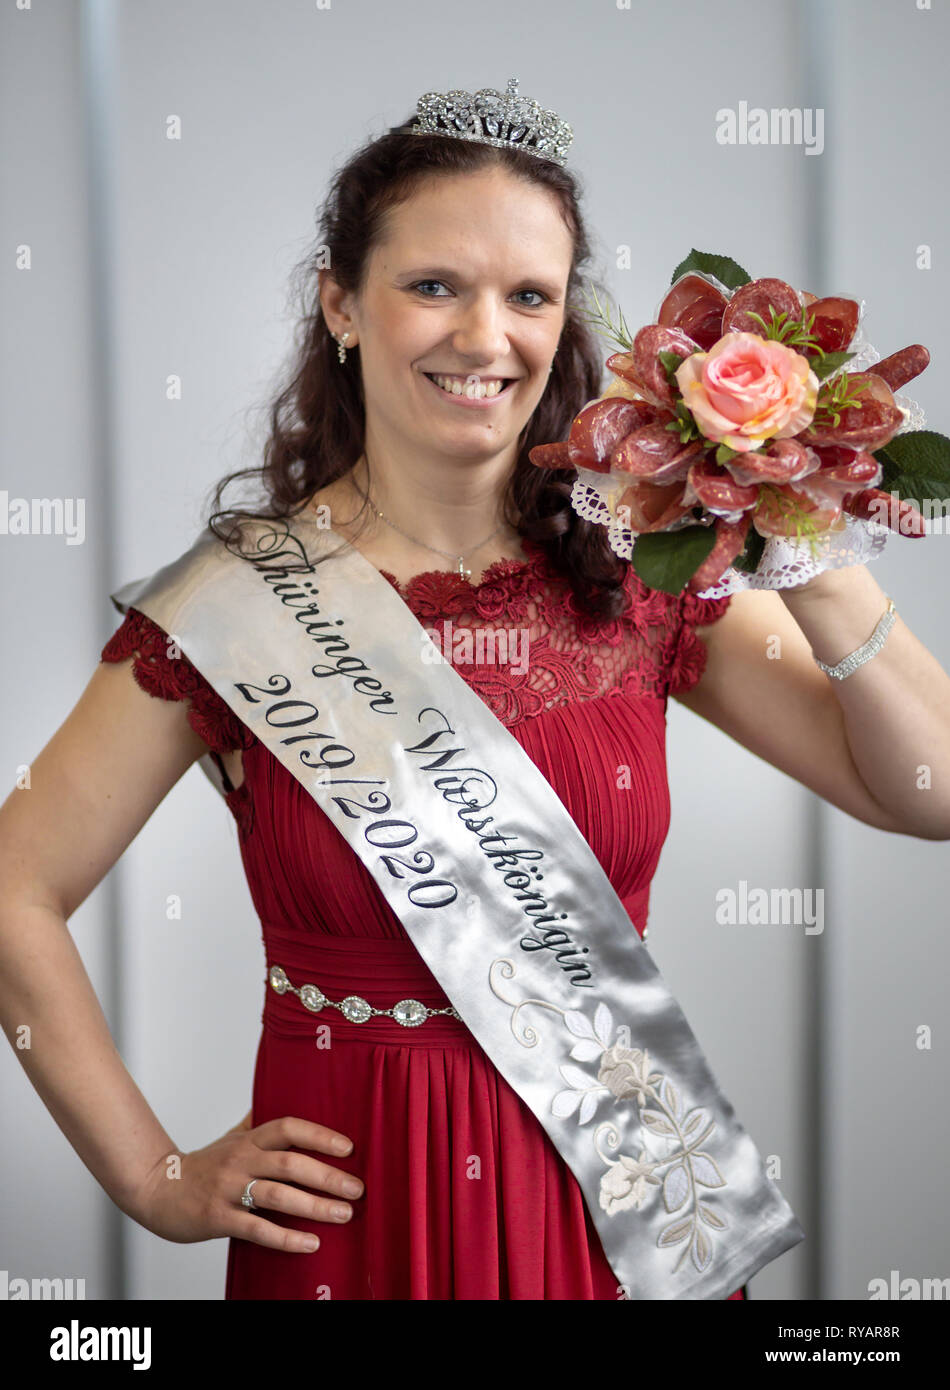 Erfurt, Germany. 13th Mar, 2019. The new sausage queen Jenifer Risch poses with a bouquet of sausages on the 23rd Day of Thuringian Sausage Specialities. The event takes place as part of the Thuringia exhibition (9.-17.3.) at Messe Erfurt. Credit: Michael Reichel/dpa/Alamy Live News Stock Photo